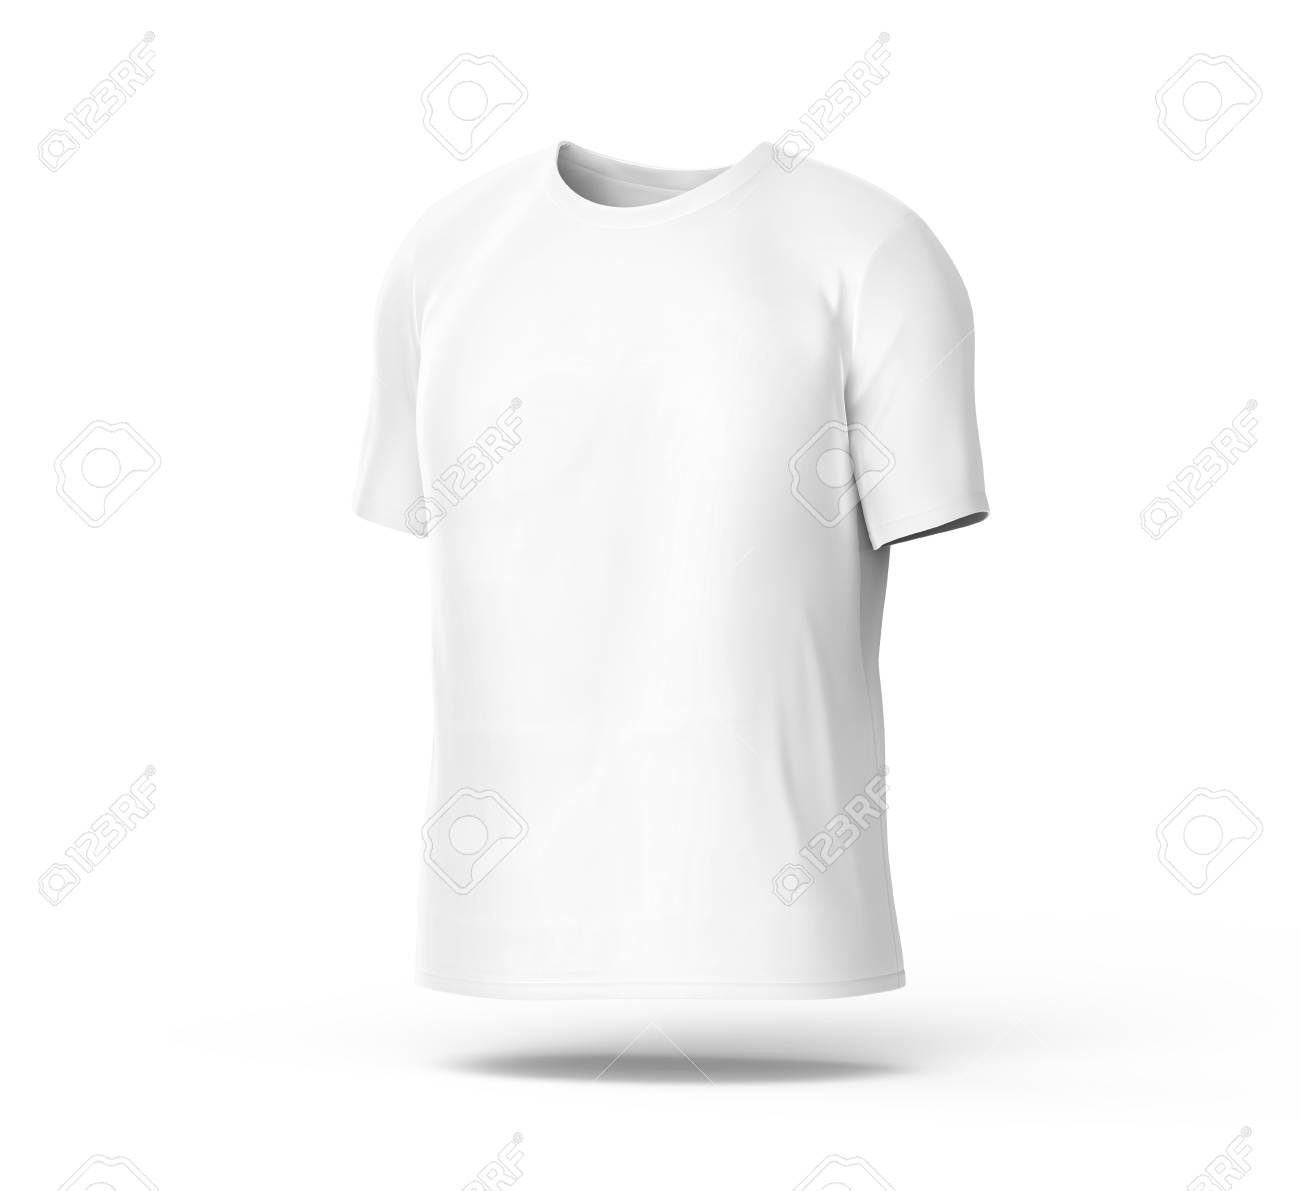 Crew Neck T Shirt Blank White Cloth Template For Men With Invisible Model Isolated